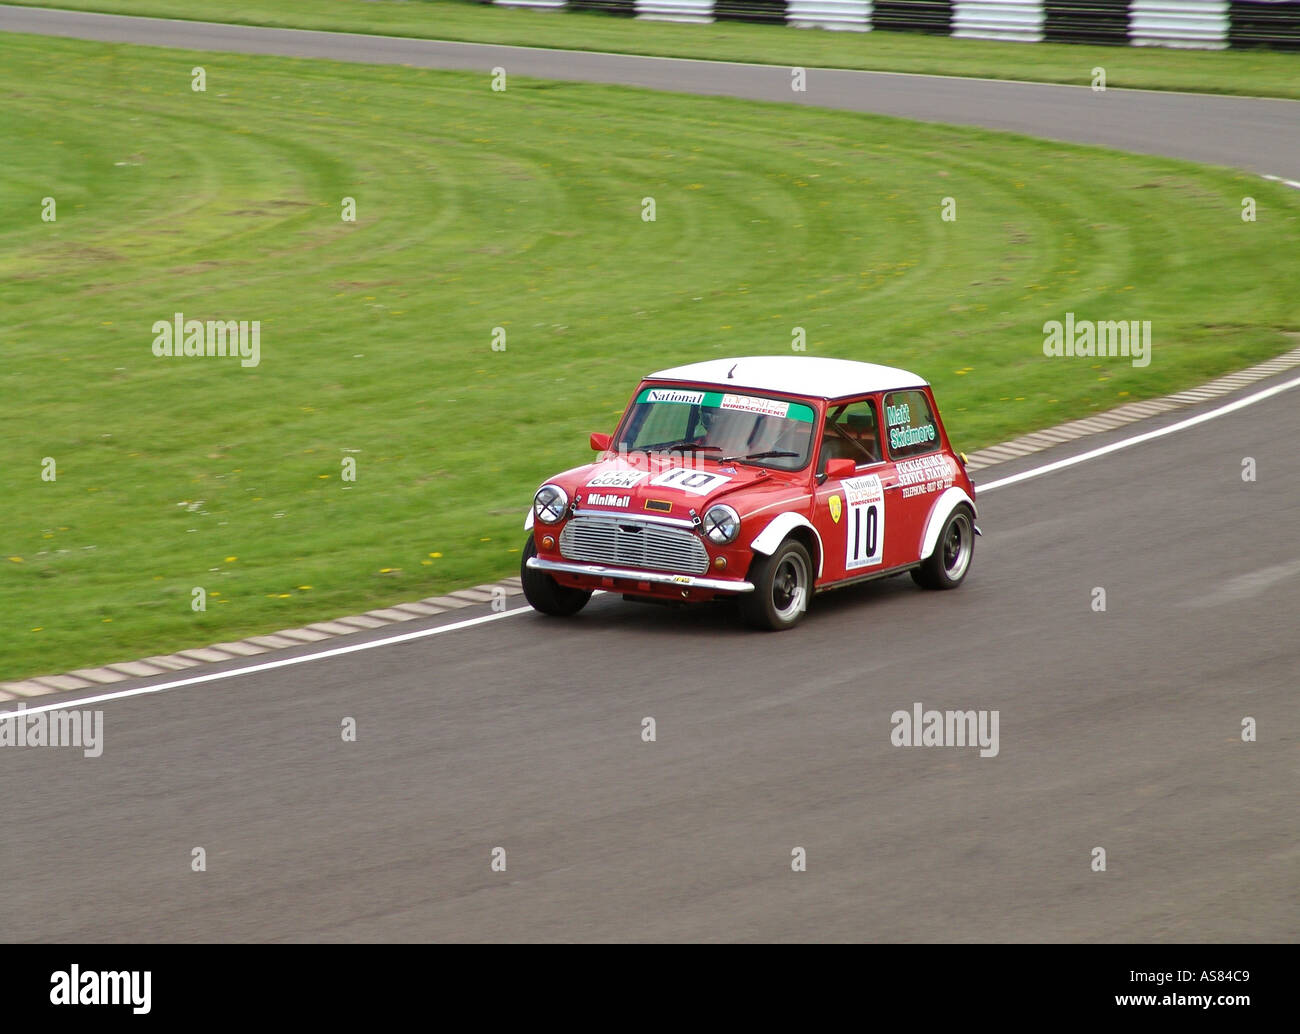 Motor racing car England GB UK 2004 - Stock Image